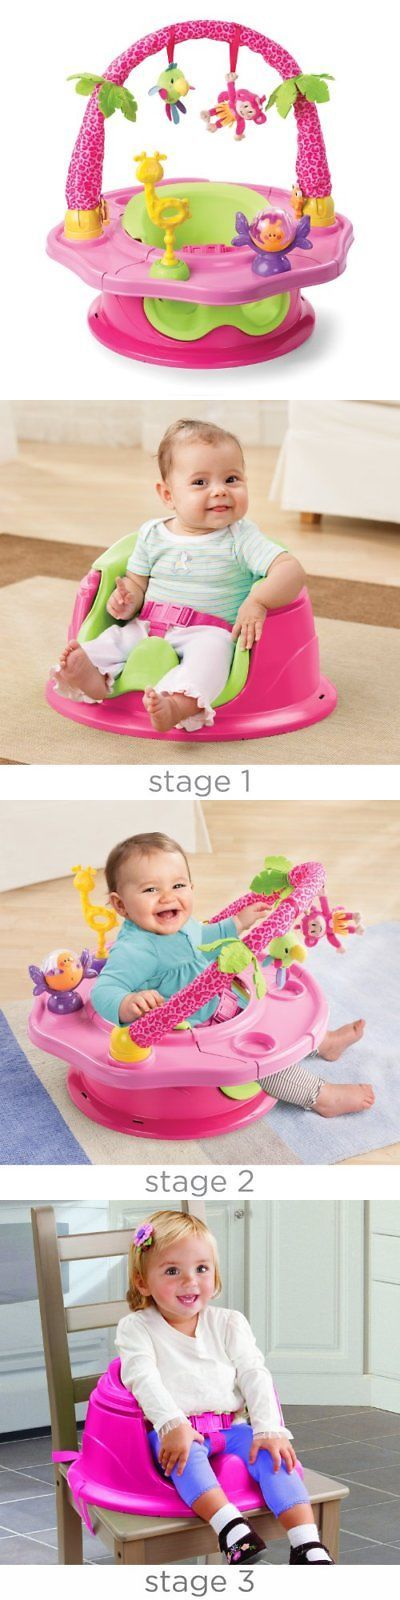 a591d2781 Summer Infant 3-Stage SuperSeat Deluxe Giggles Island Positioner ...